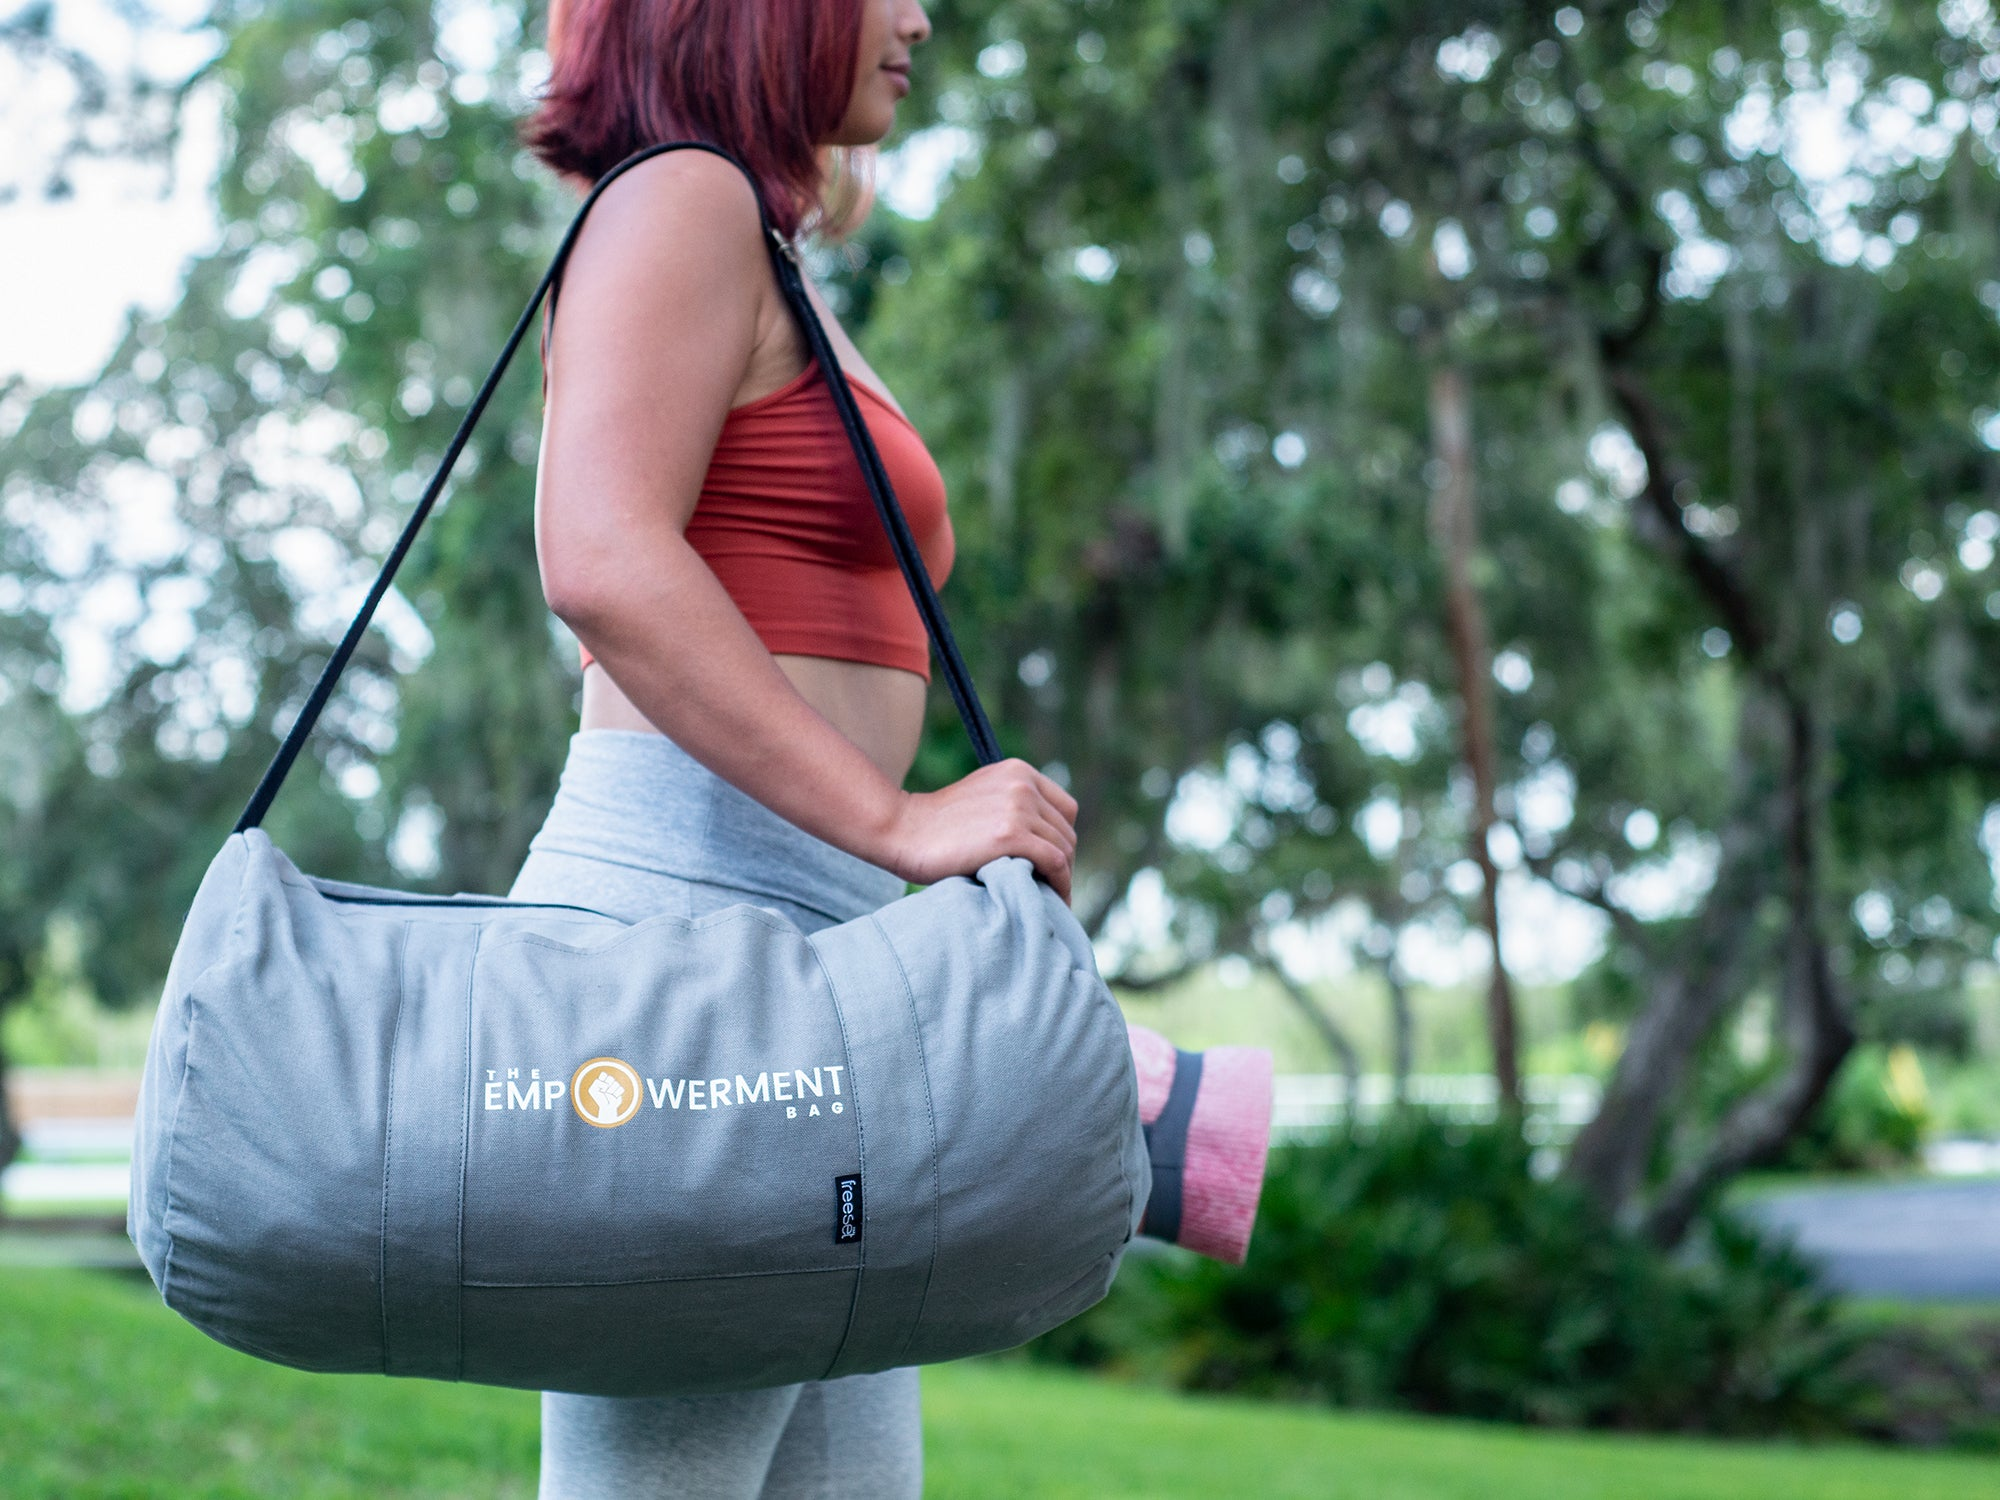 Young fitness enthusiast taking duffel bag to the gym